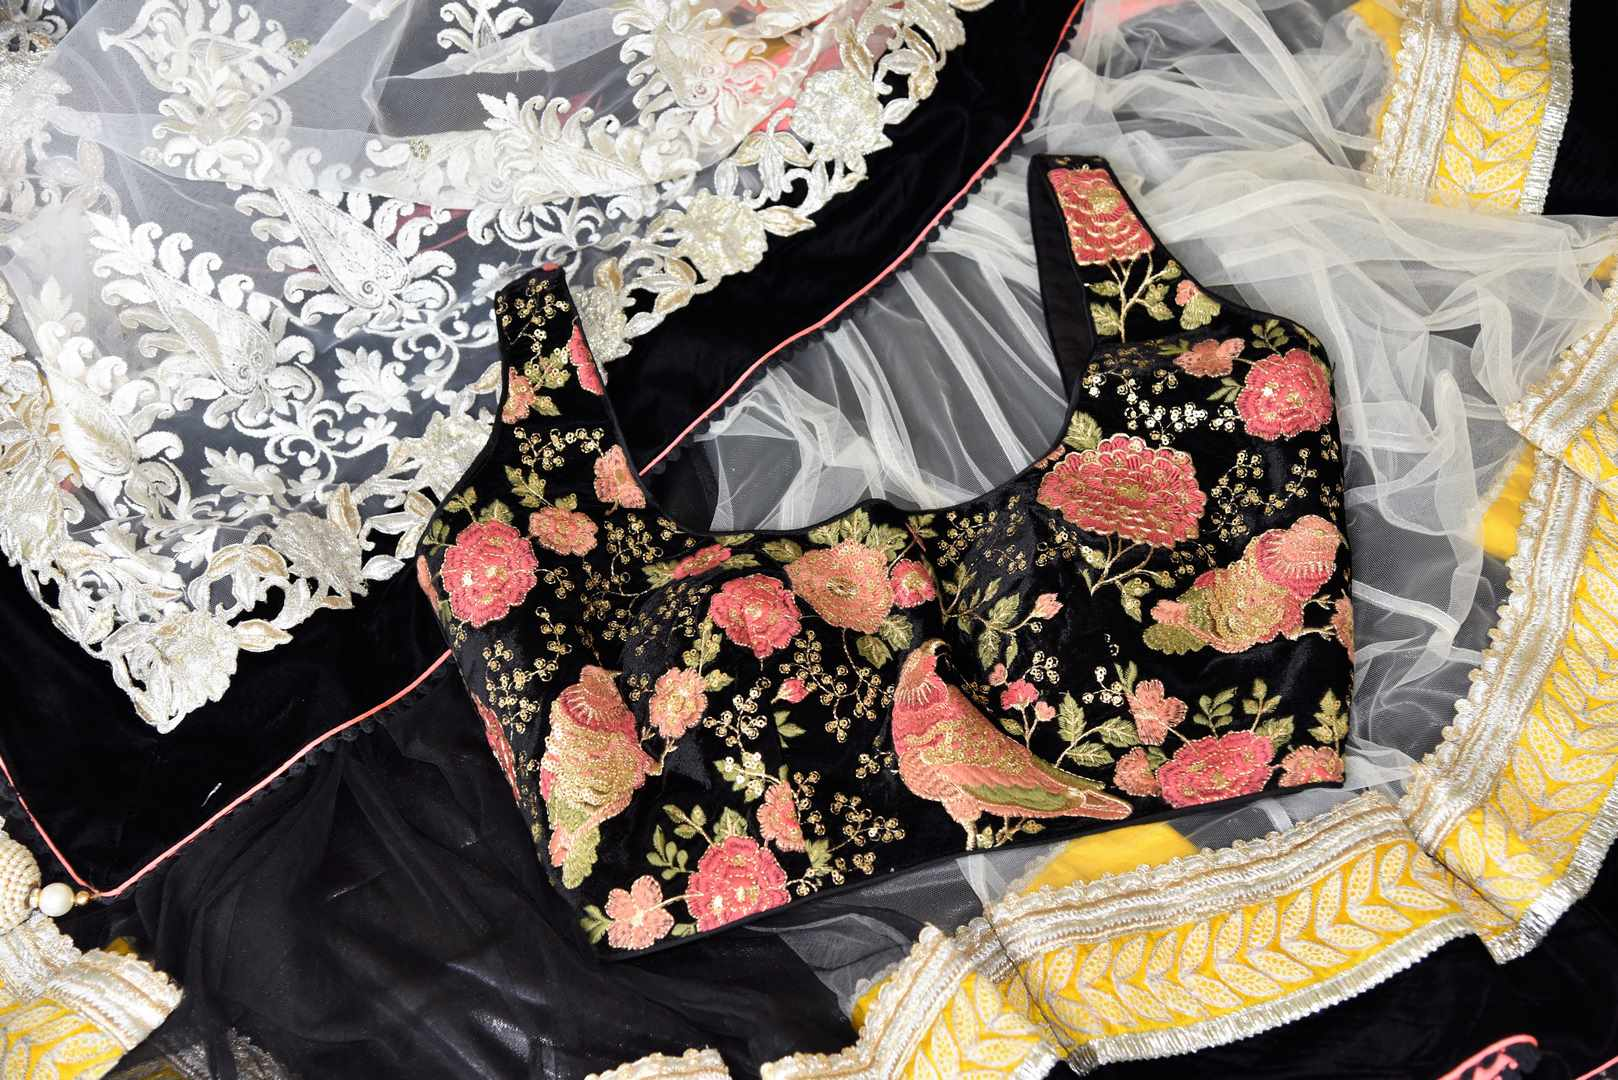 Buy white and black embroidered net saree online in USA with embroidered saree blouse. Shop beautiful designer sarees for weddings and special occasions from Pure Elegance Indian clothing store in USA.-details